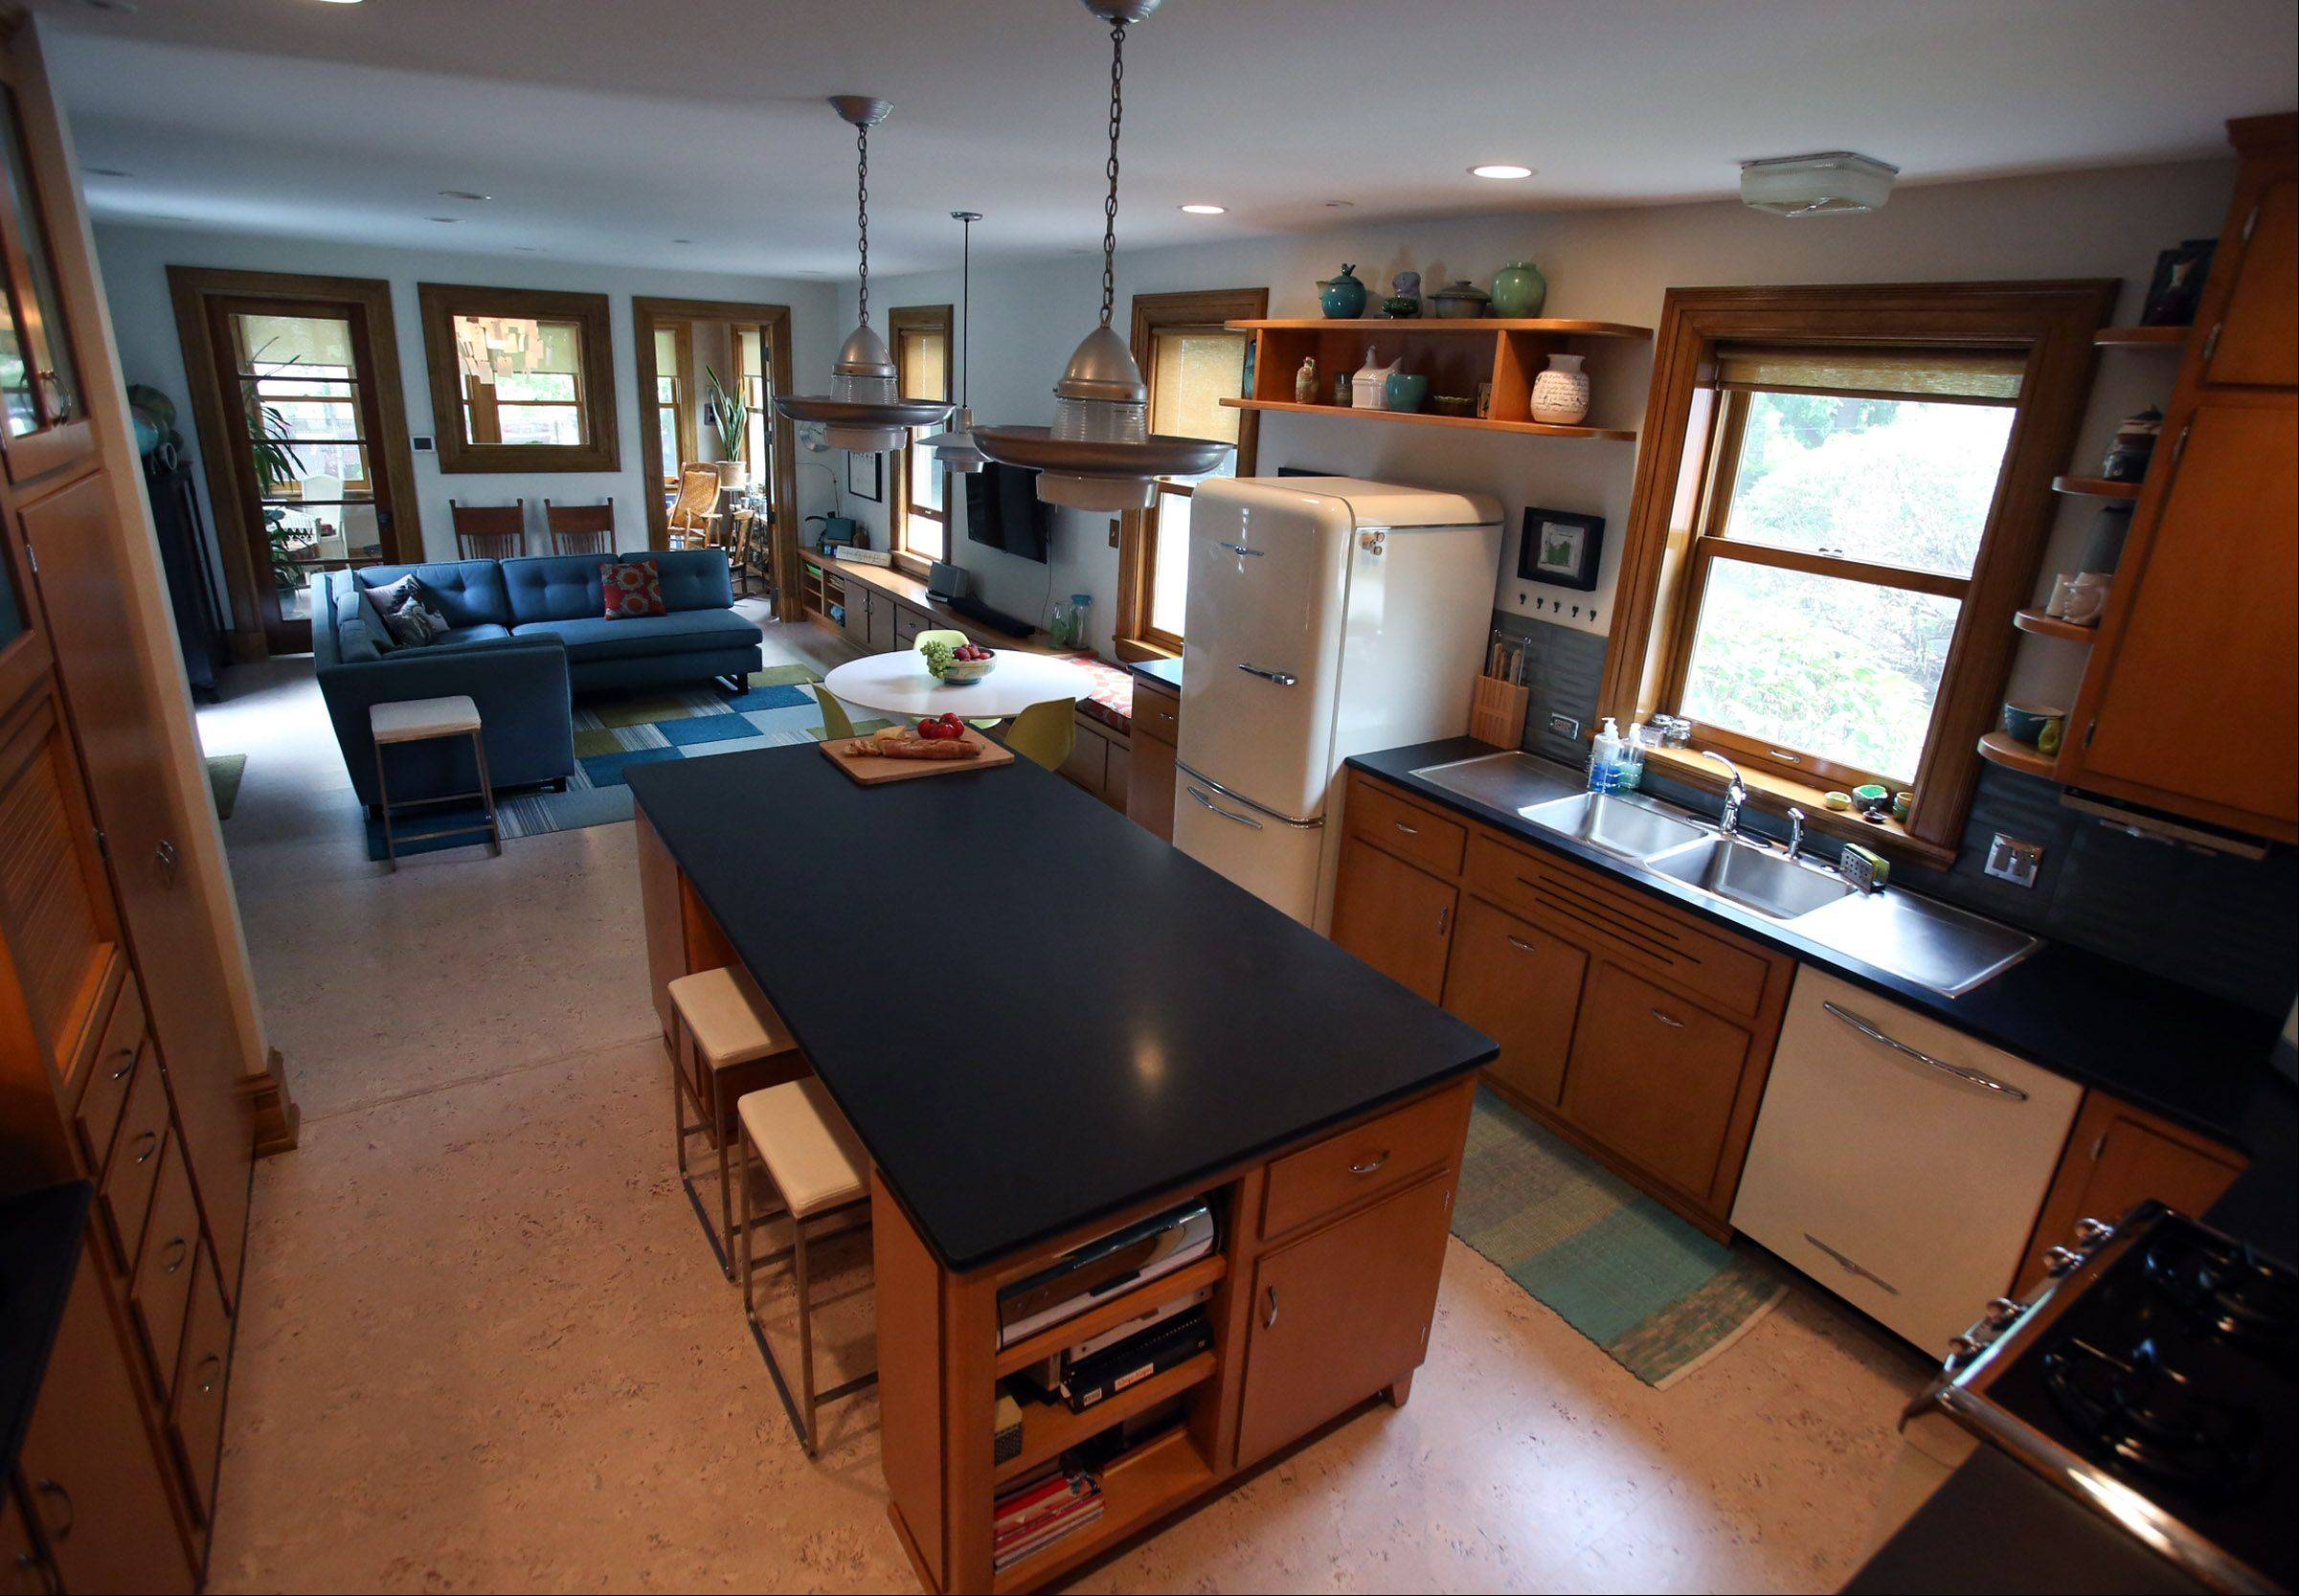 The Thompsons remodeled their kitchen and added a family room.